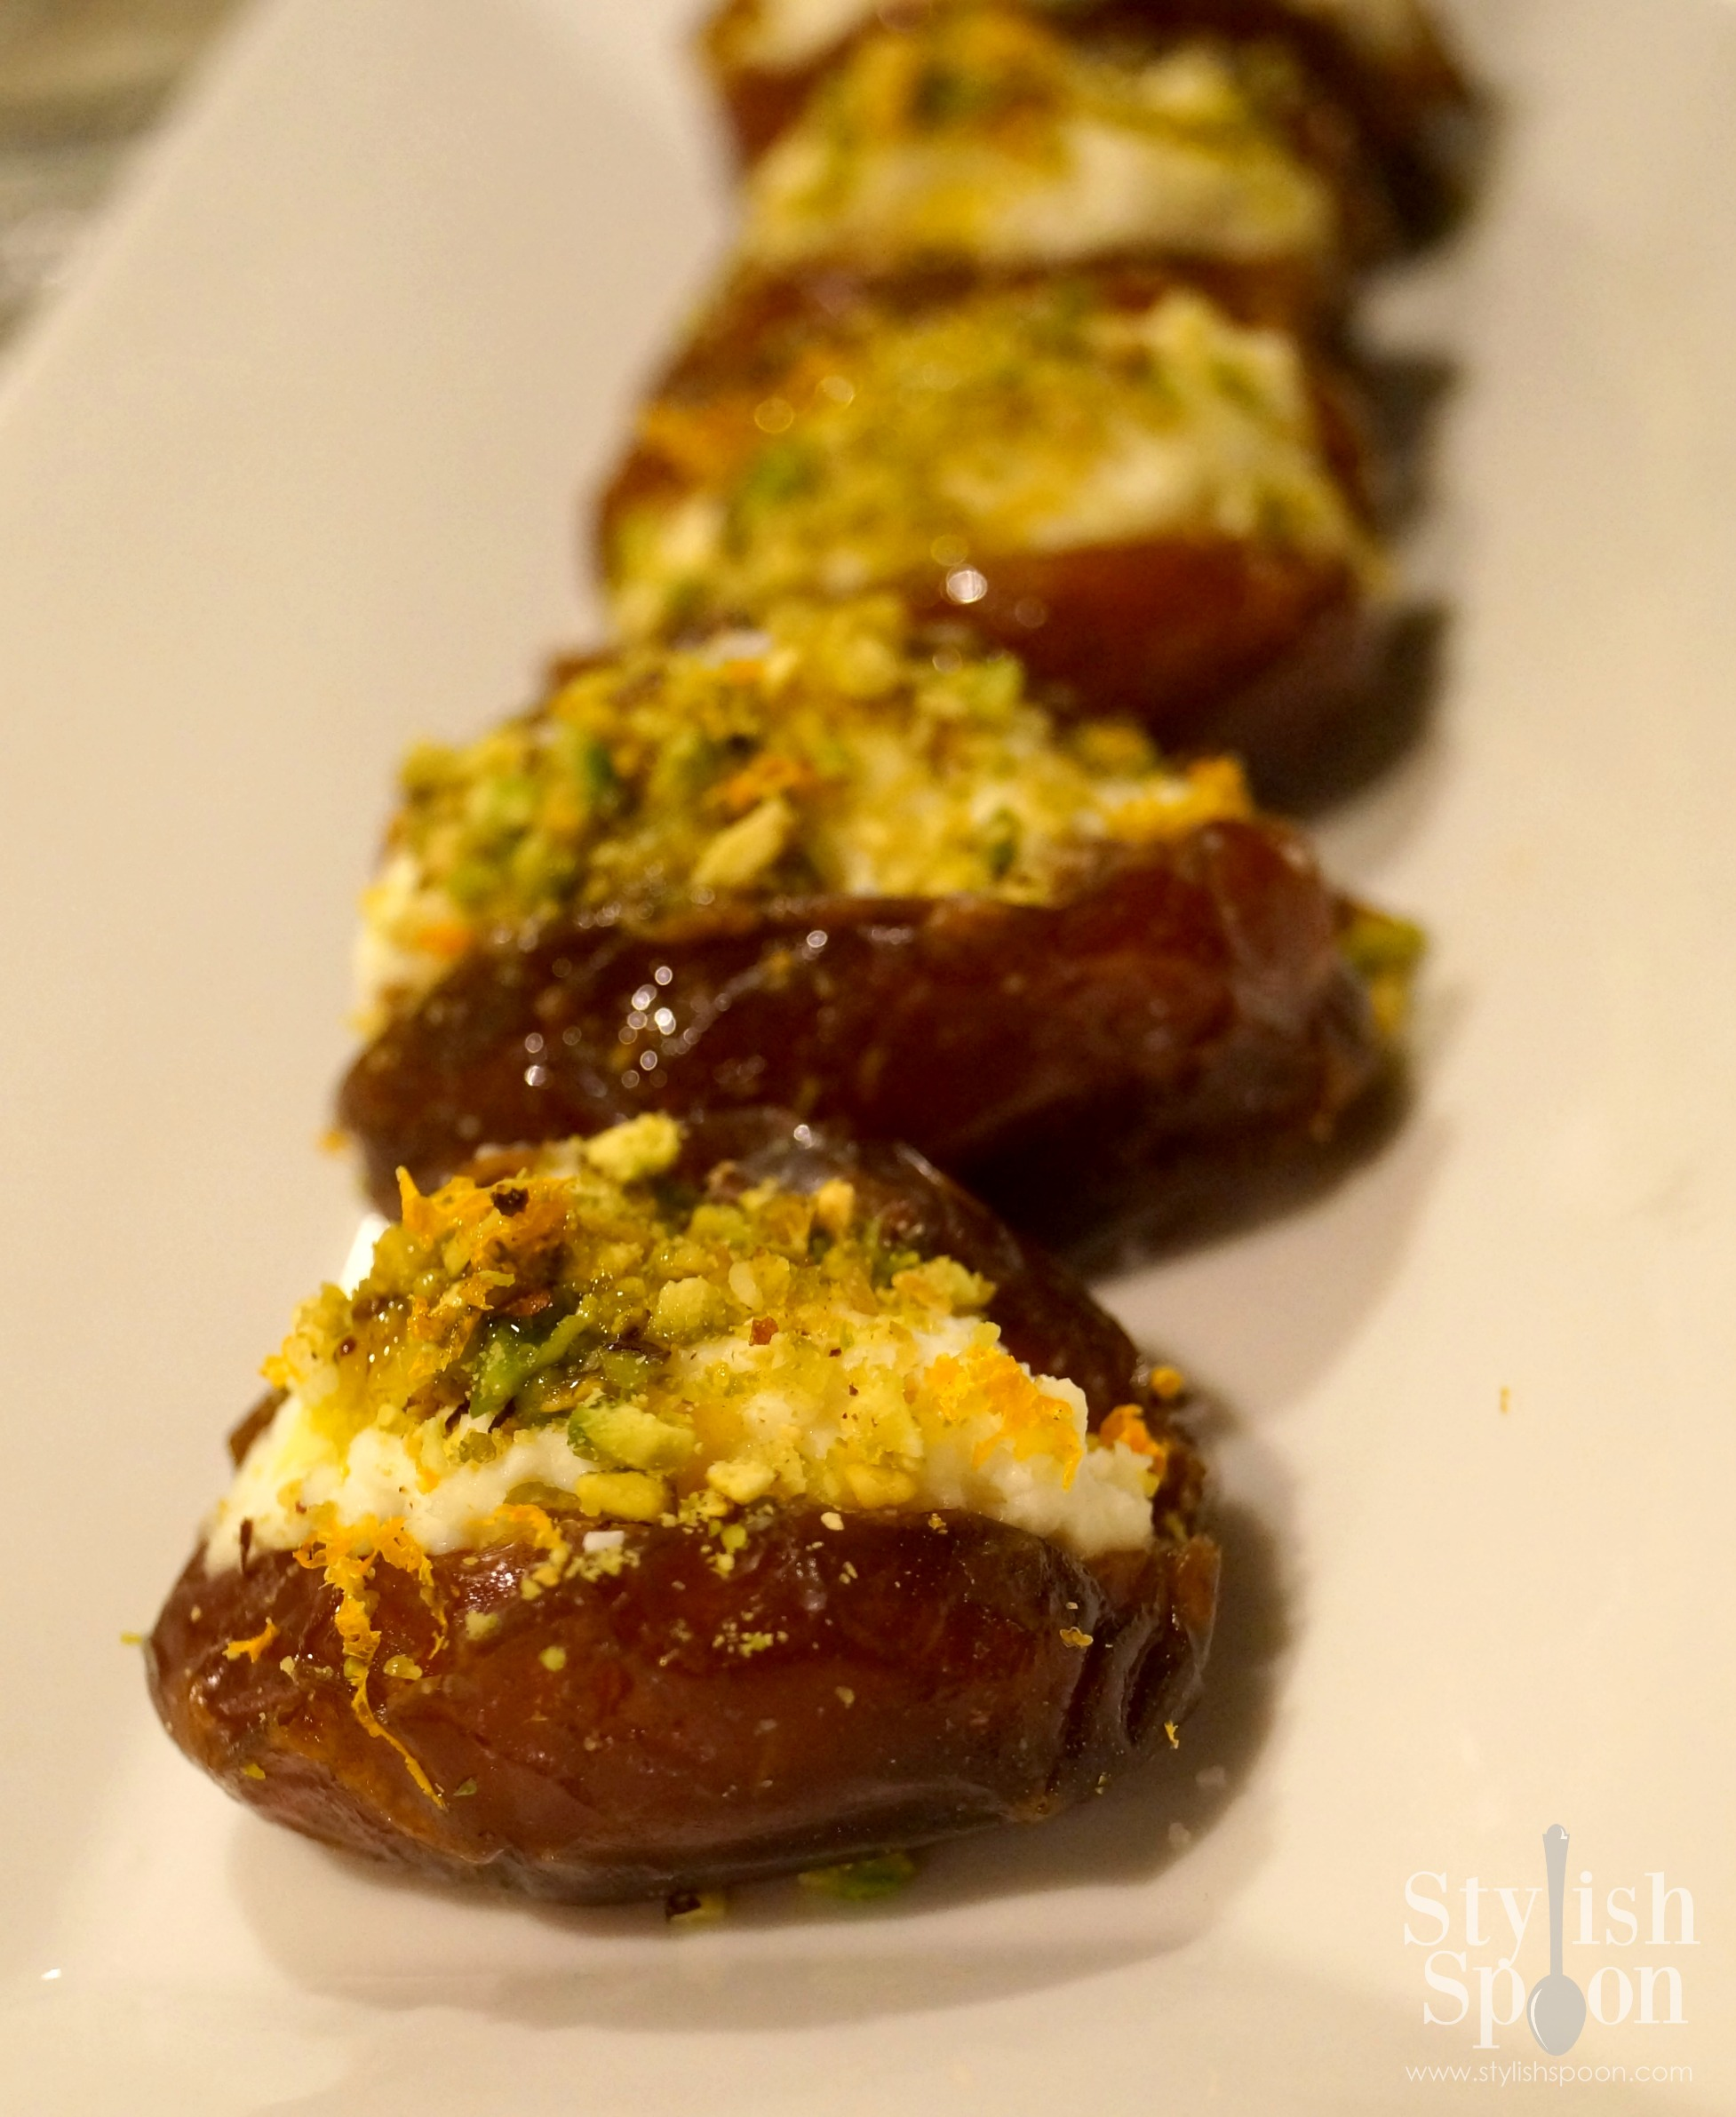 Ricotta & Pistachio Stuffed Dates